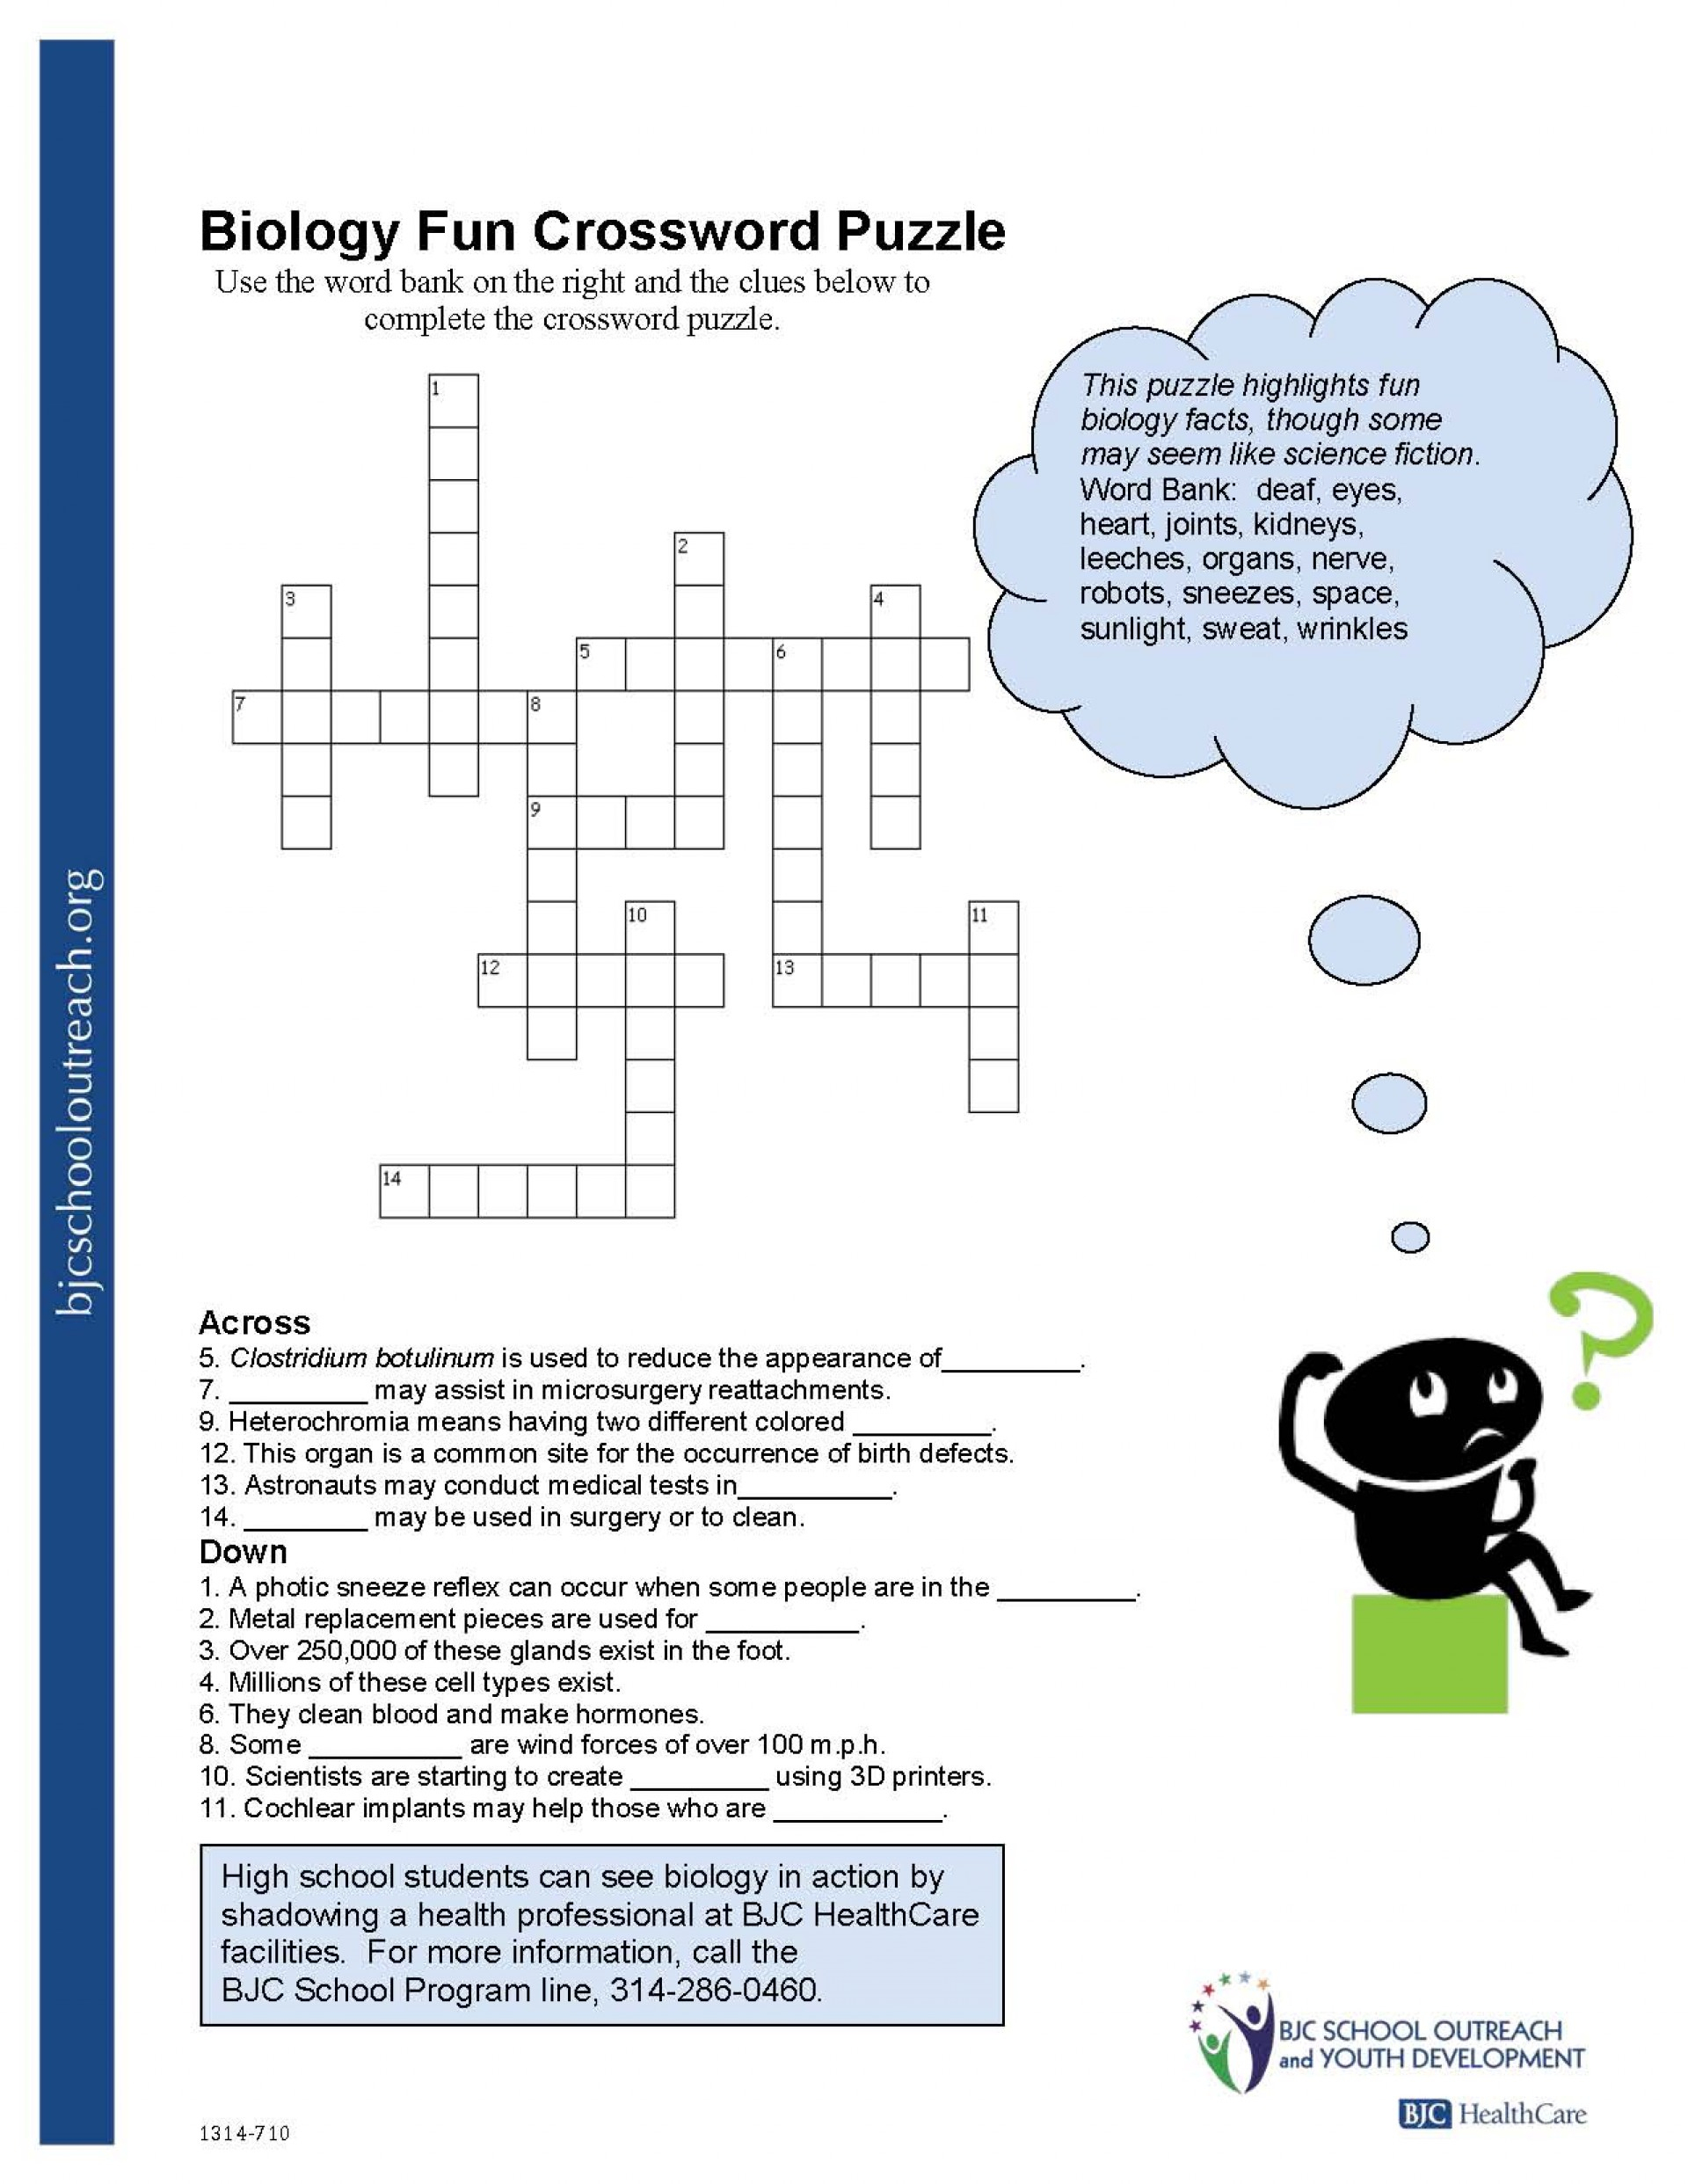 Crosswords Crossword Puzzle Worksheets For Middle School Biology Fun - Free Printable Crossword Puzzles Robotics